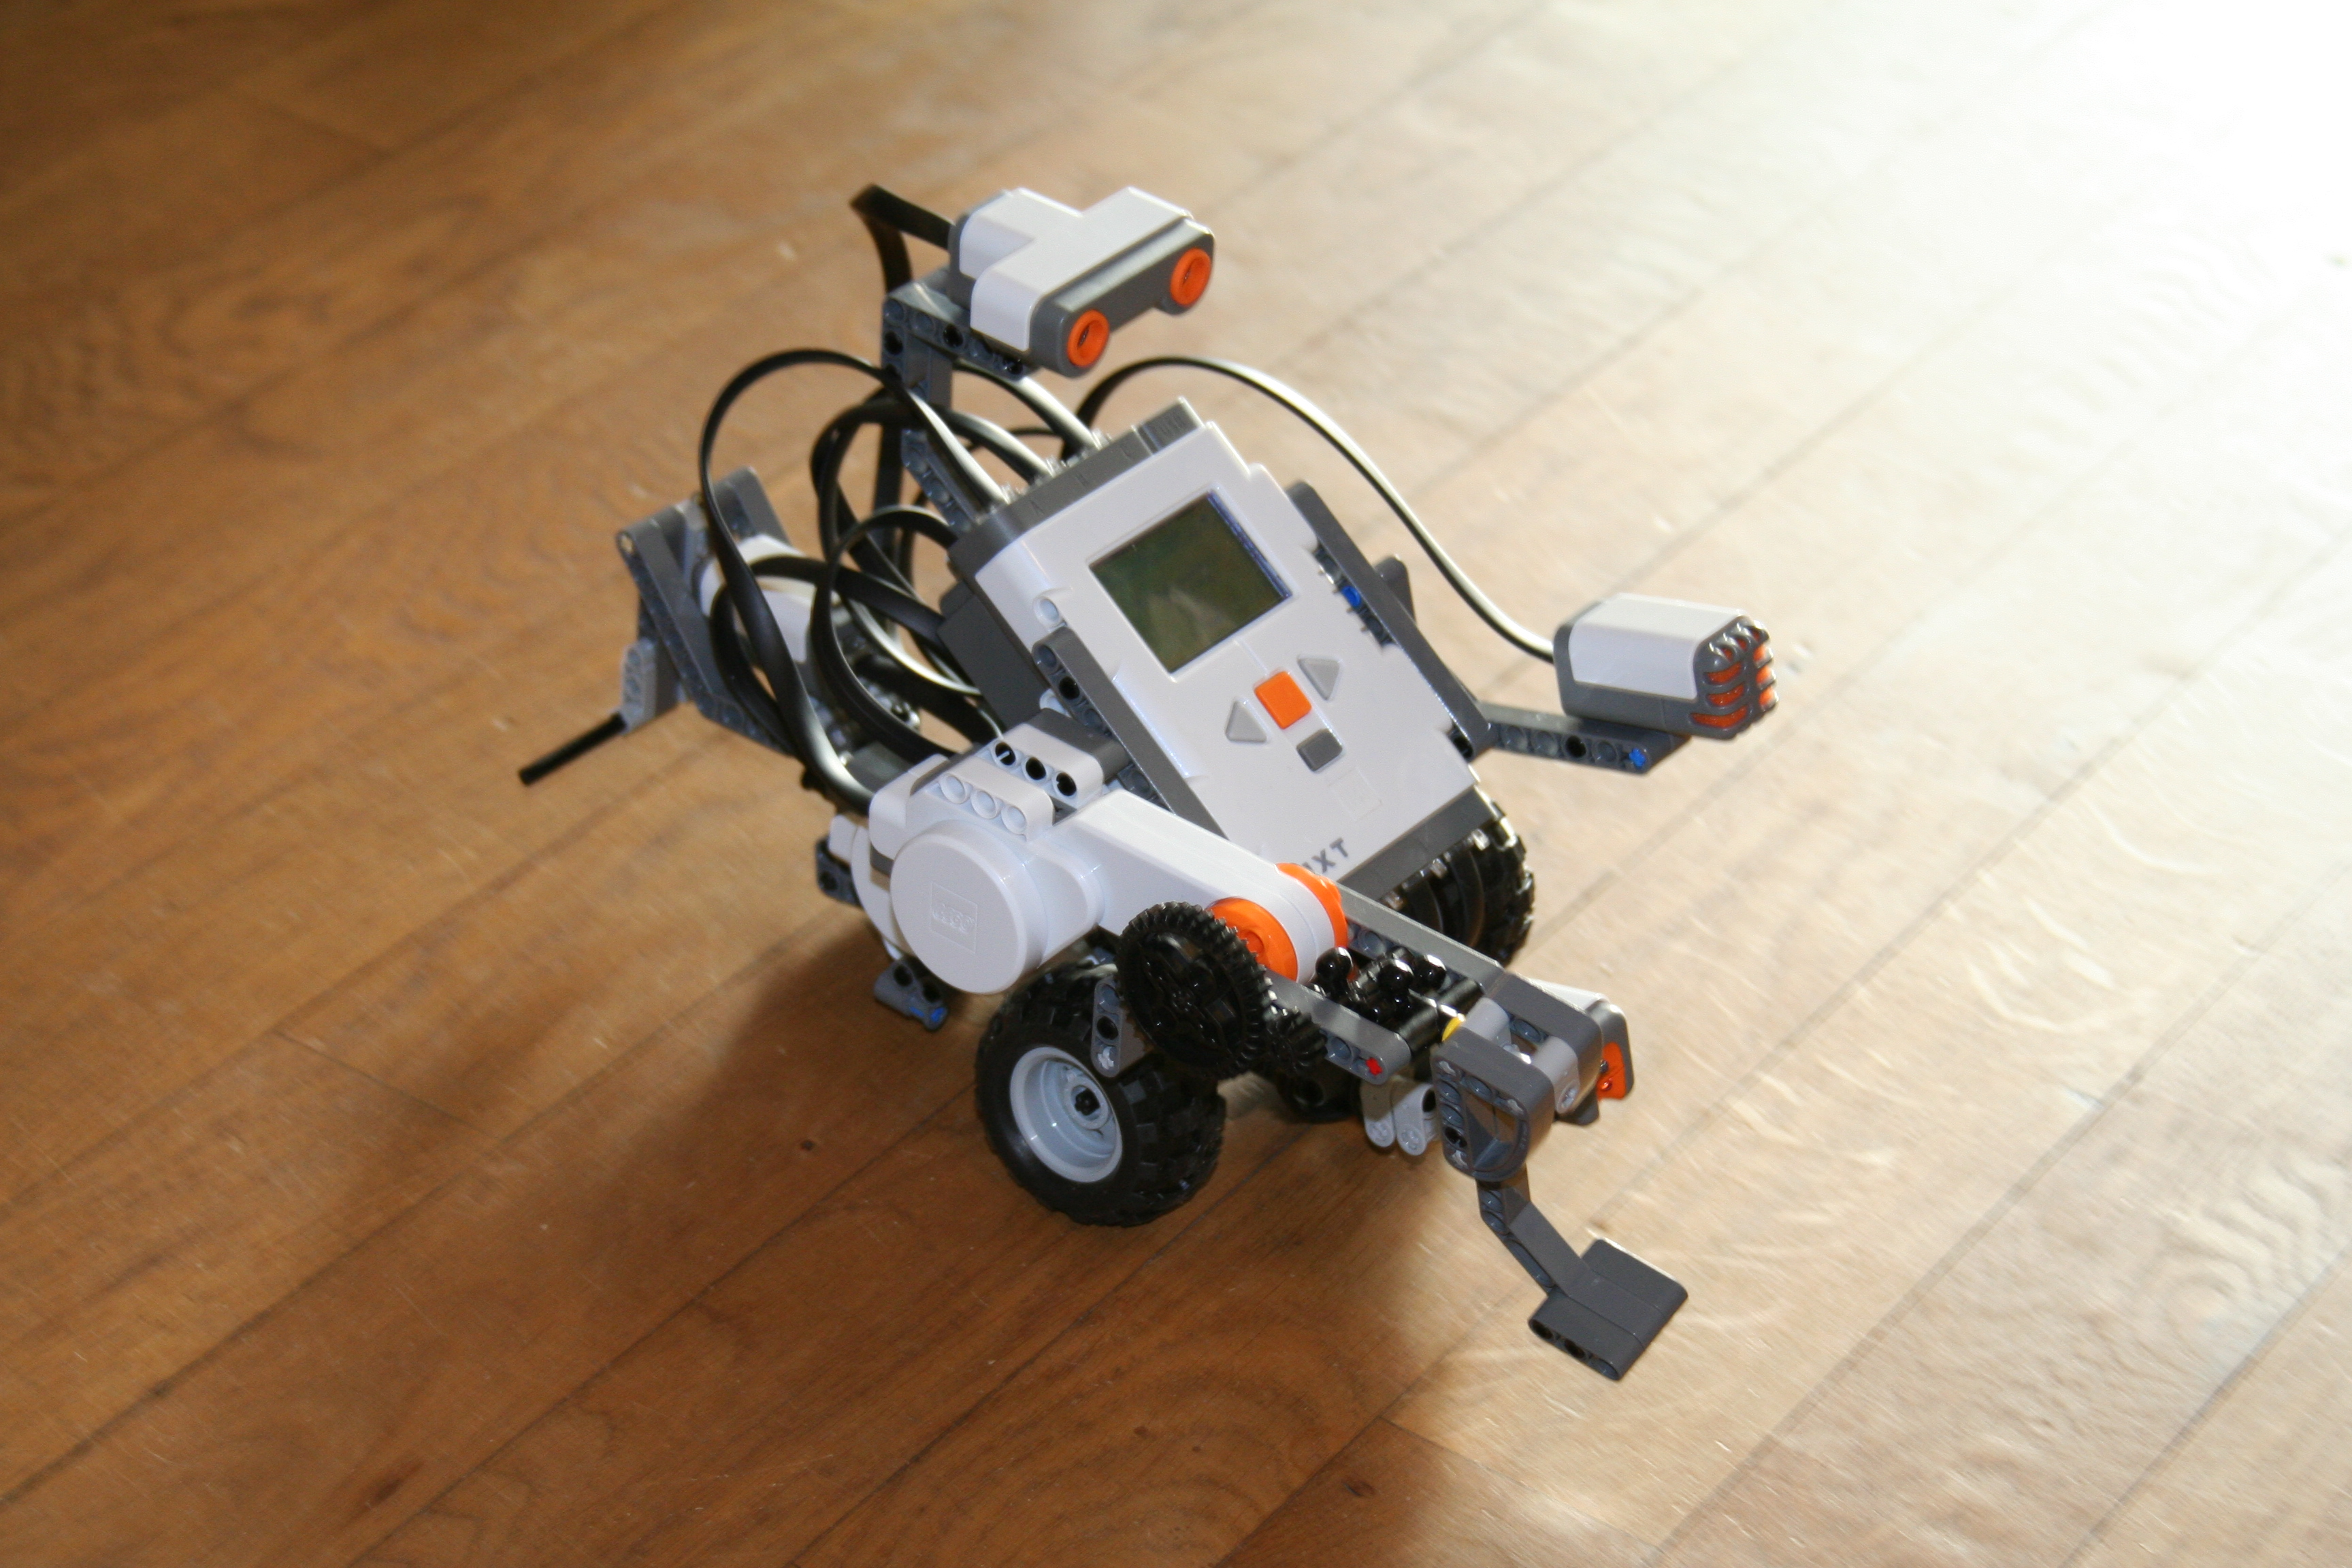 mindstorms nxt projects